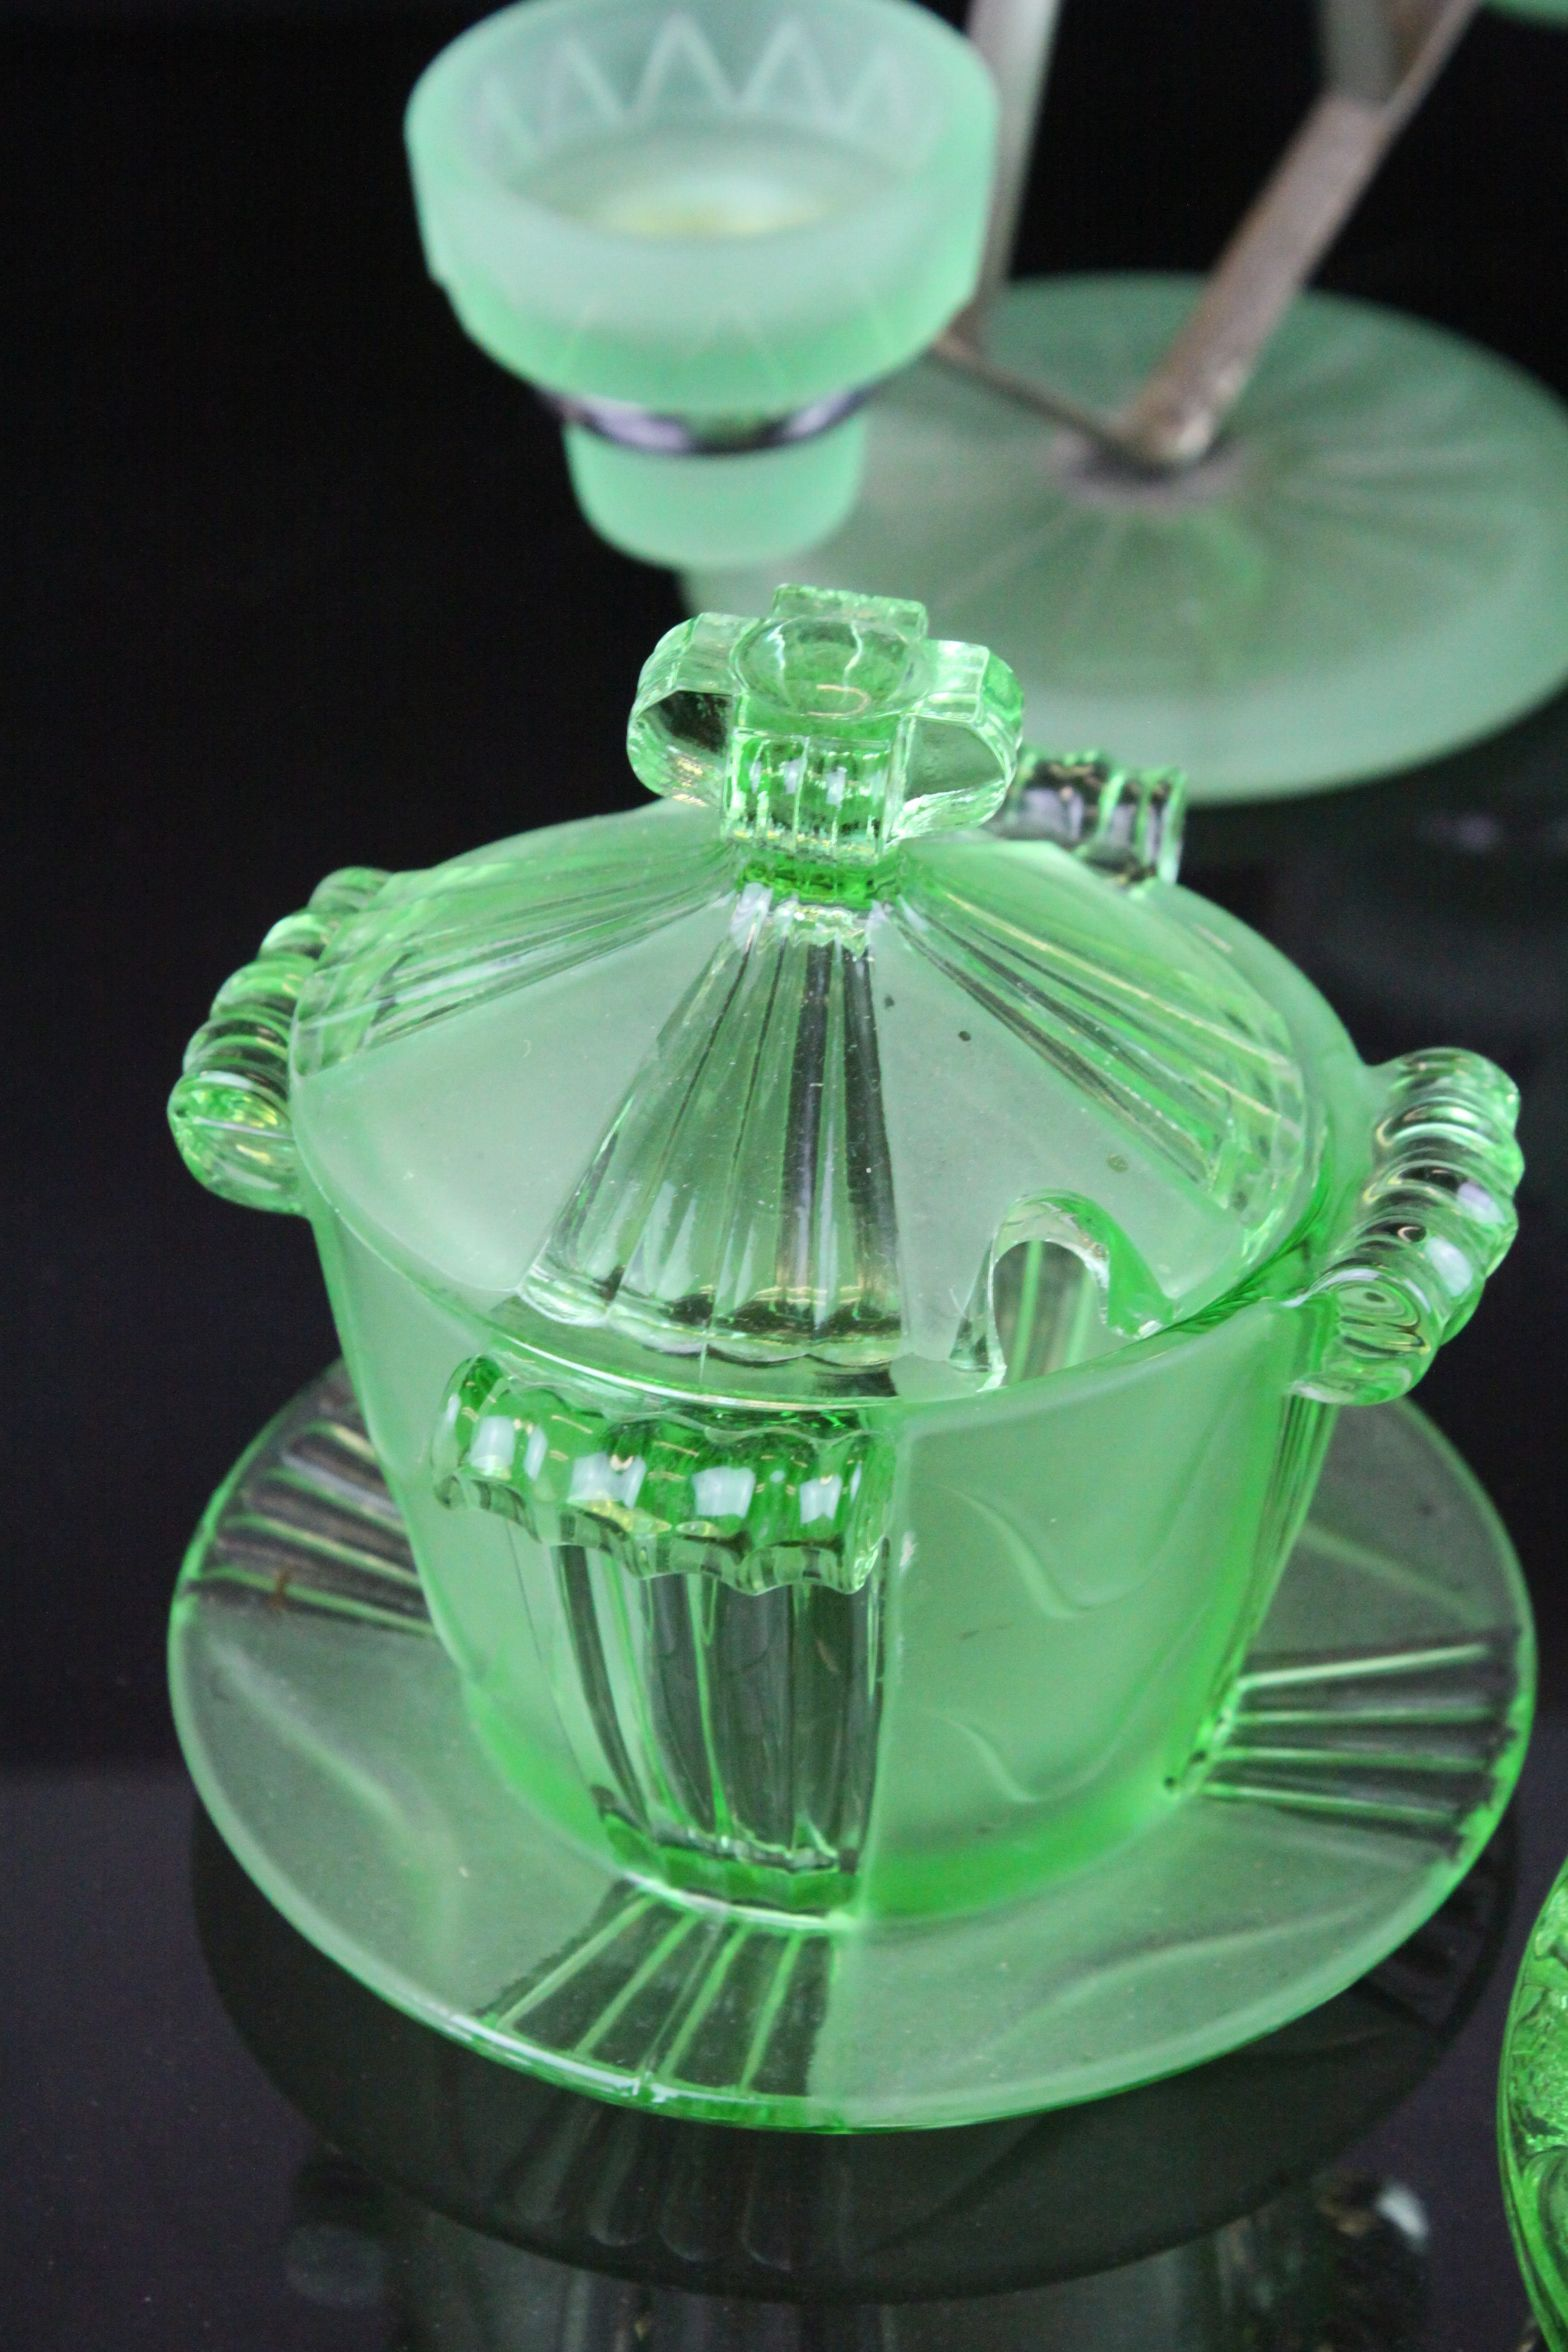 Lot 163 - Mid 20th century Pressed Glass including Uranium Glass Candlestick and Candleholders, Flower Frog in